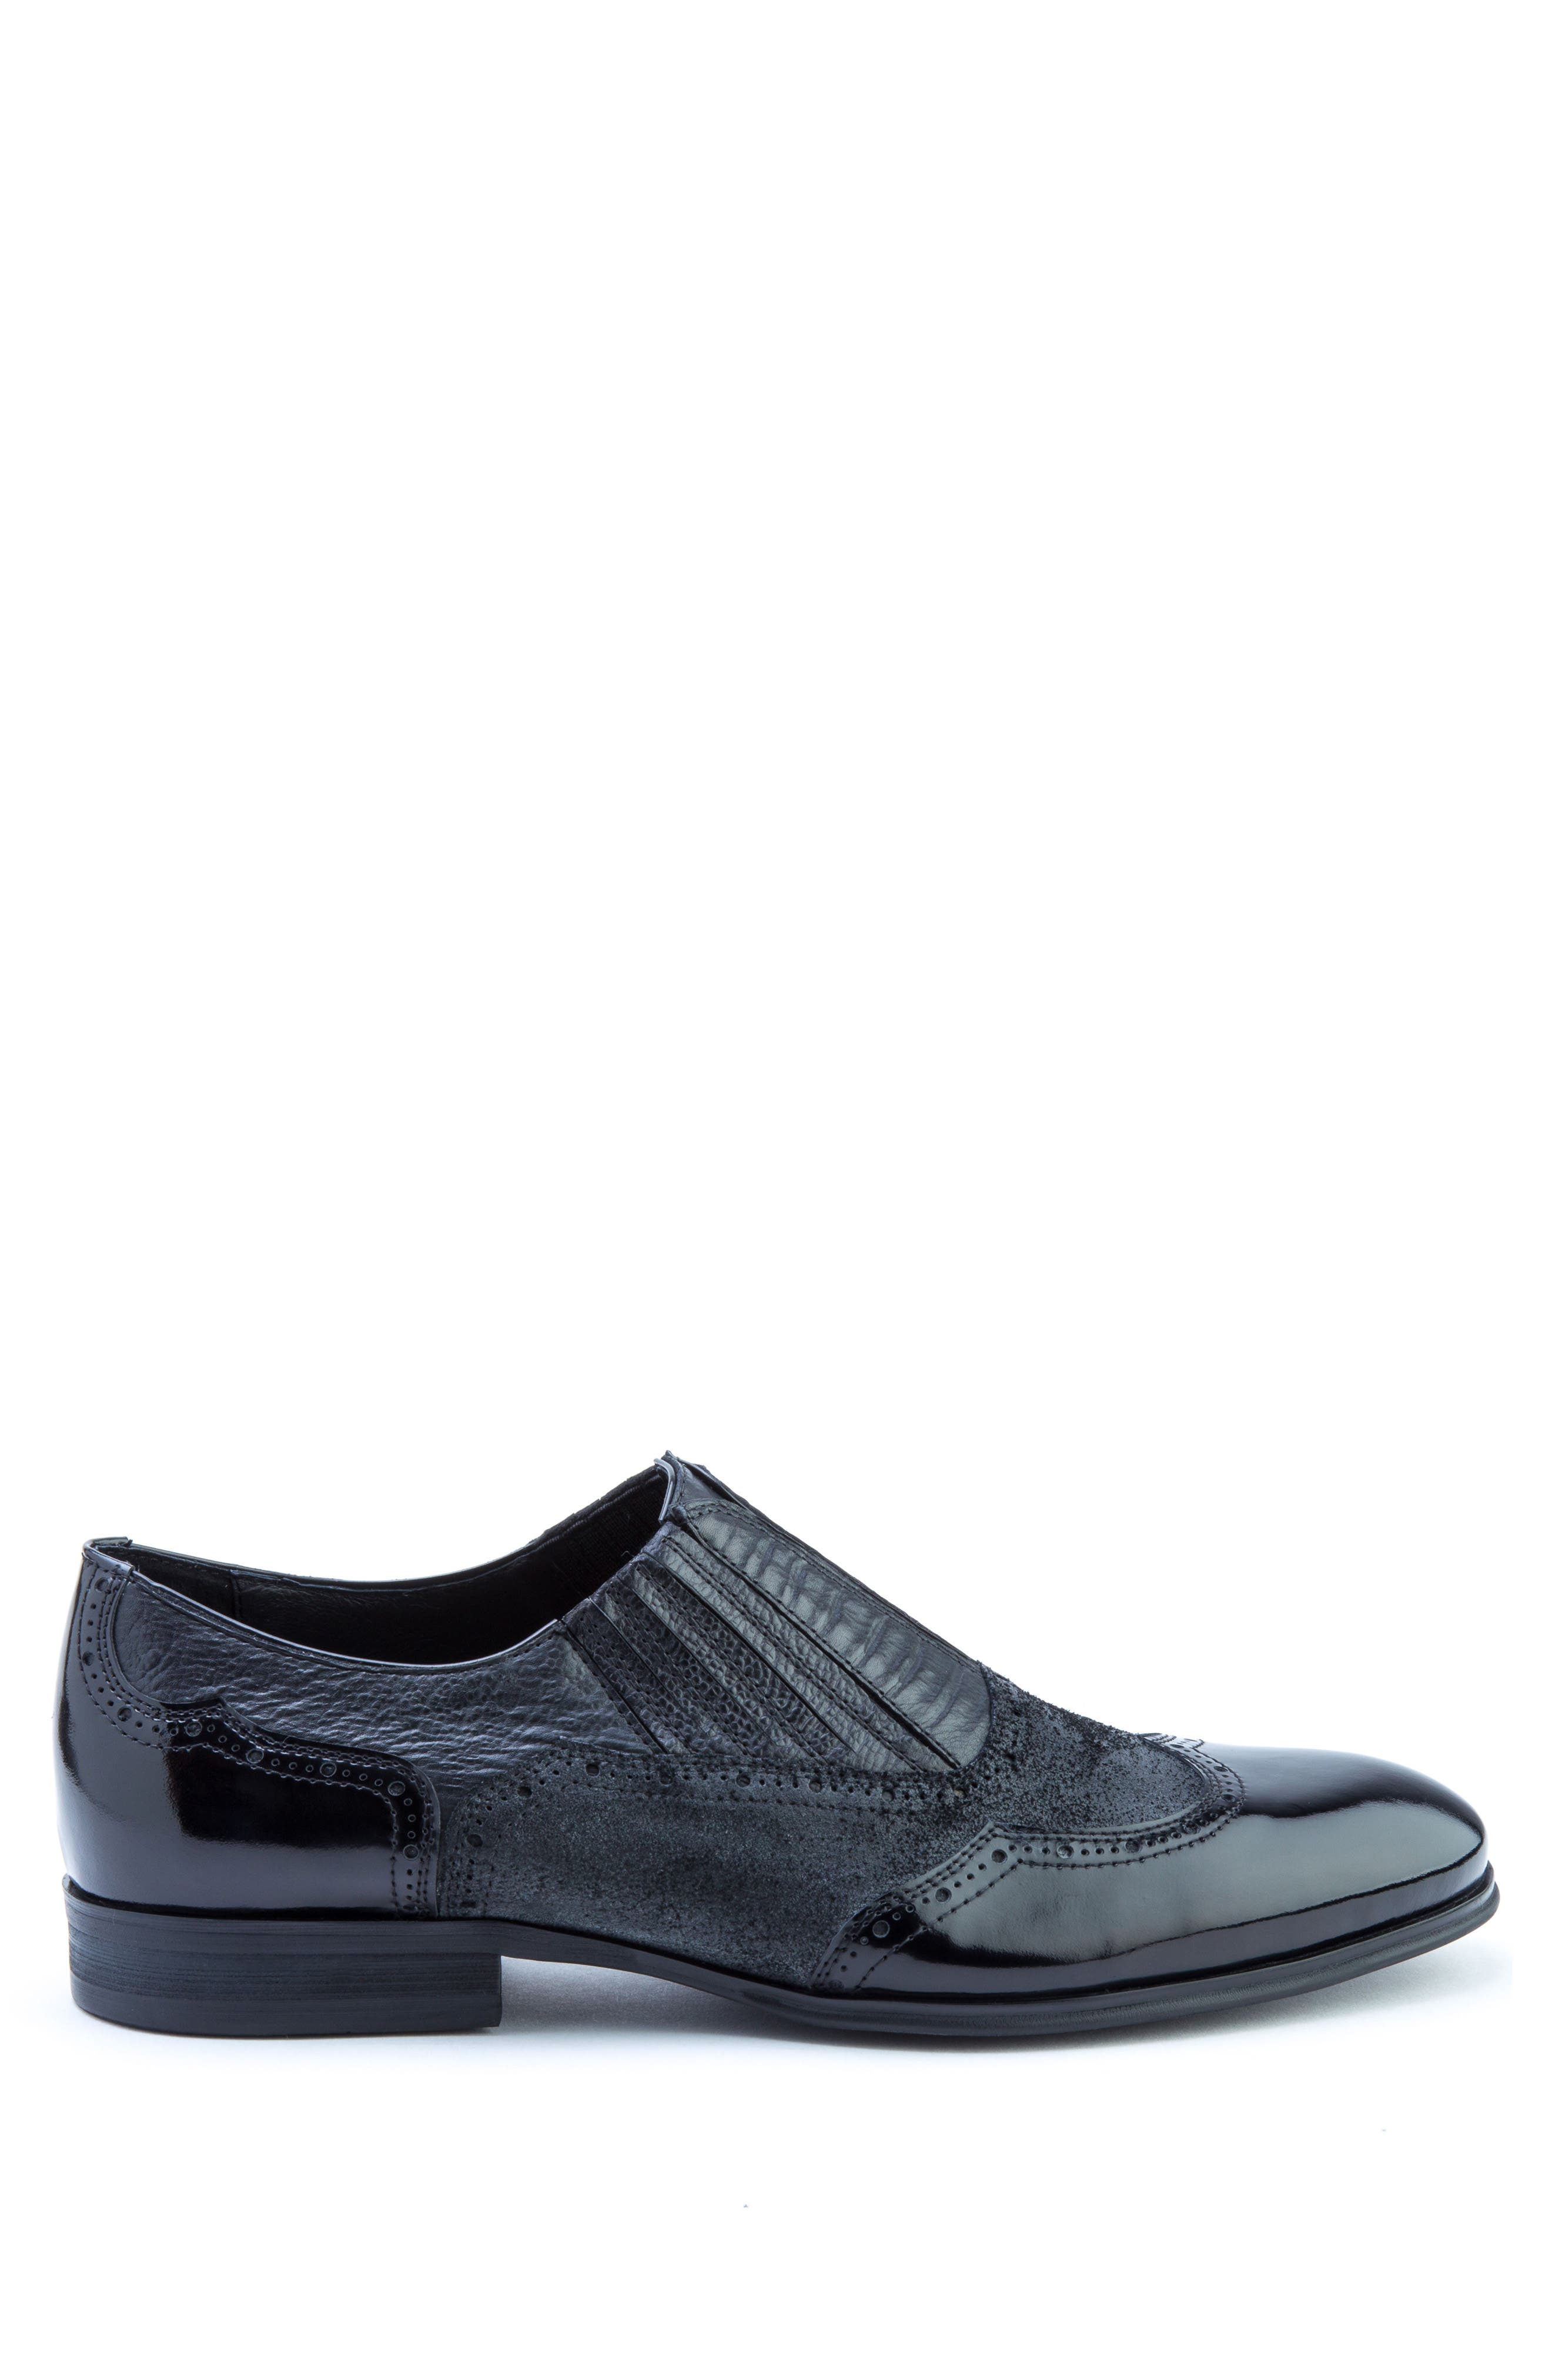 Warwick Wingtip,                             Alternate thumbnail 3, color,                             Black Leather